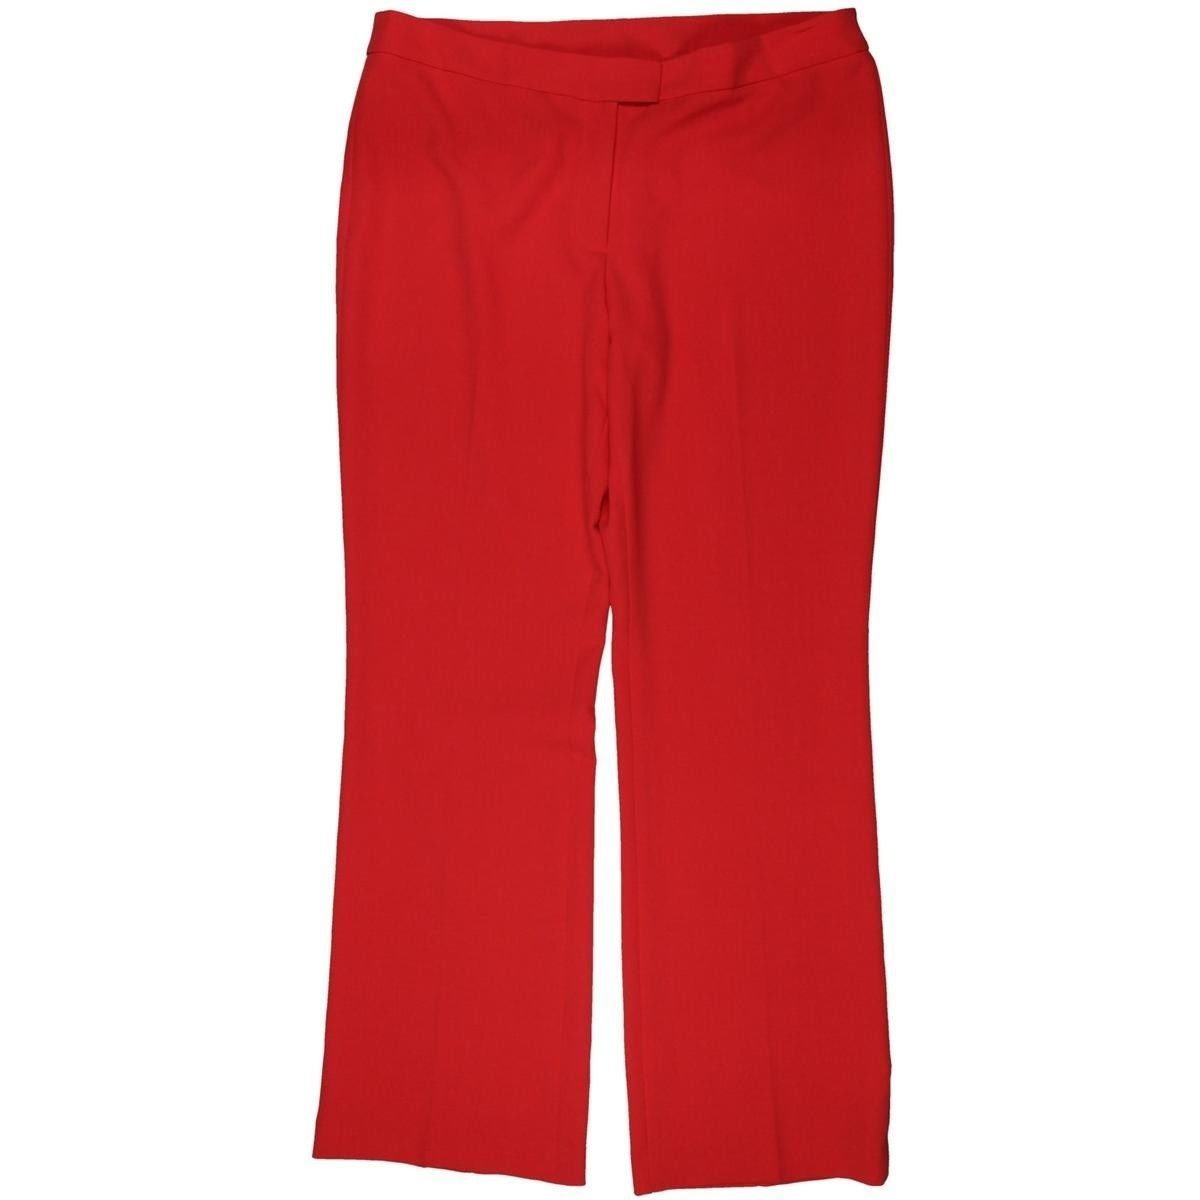 Primary image for 6970-2    Anne Klein Women's Dress Pant, Red, 2  $79